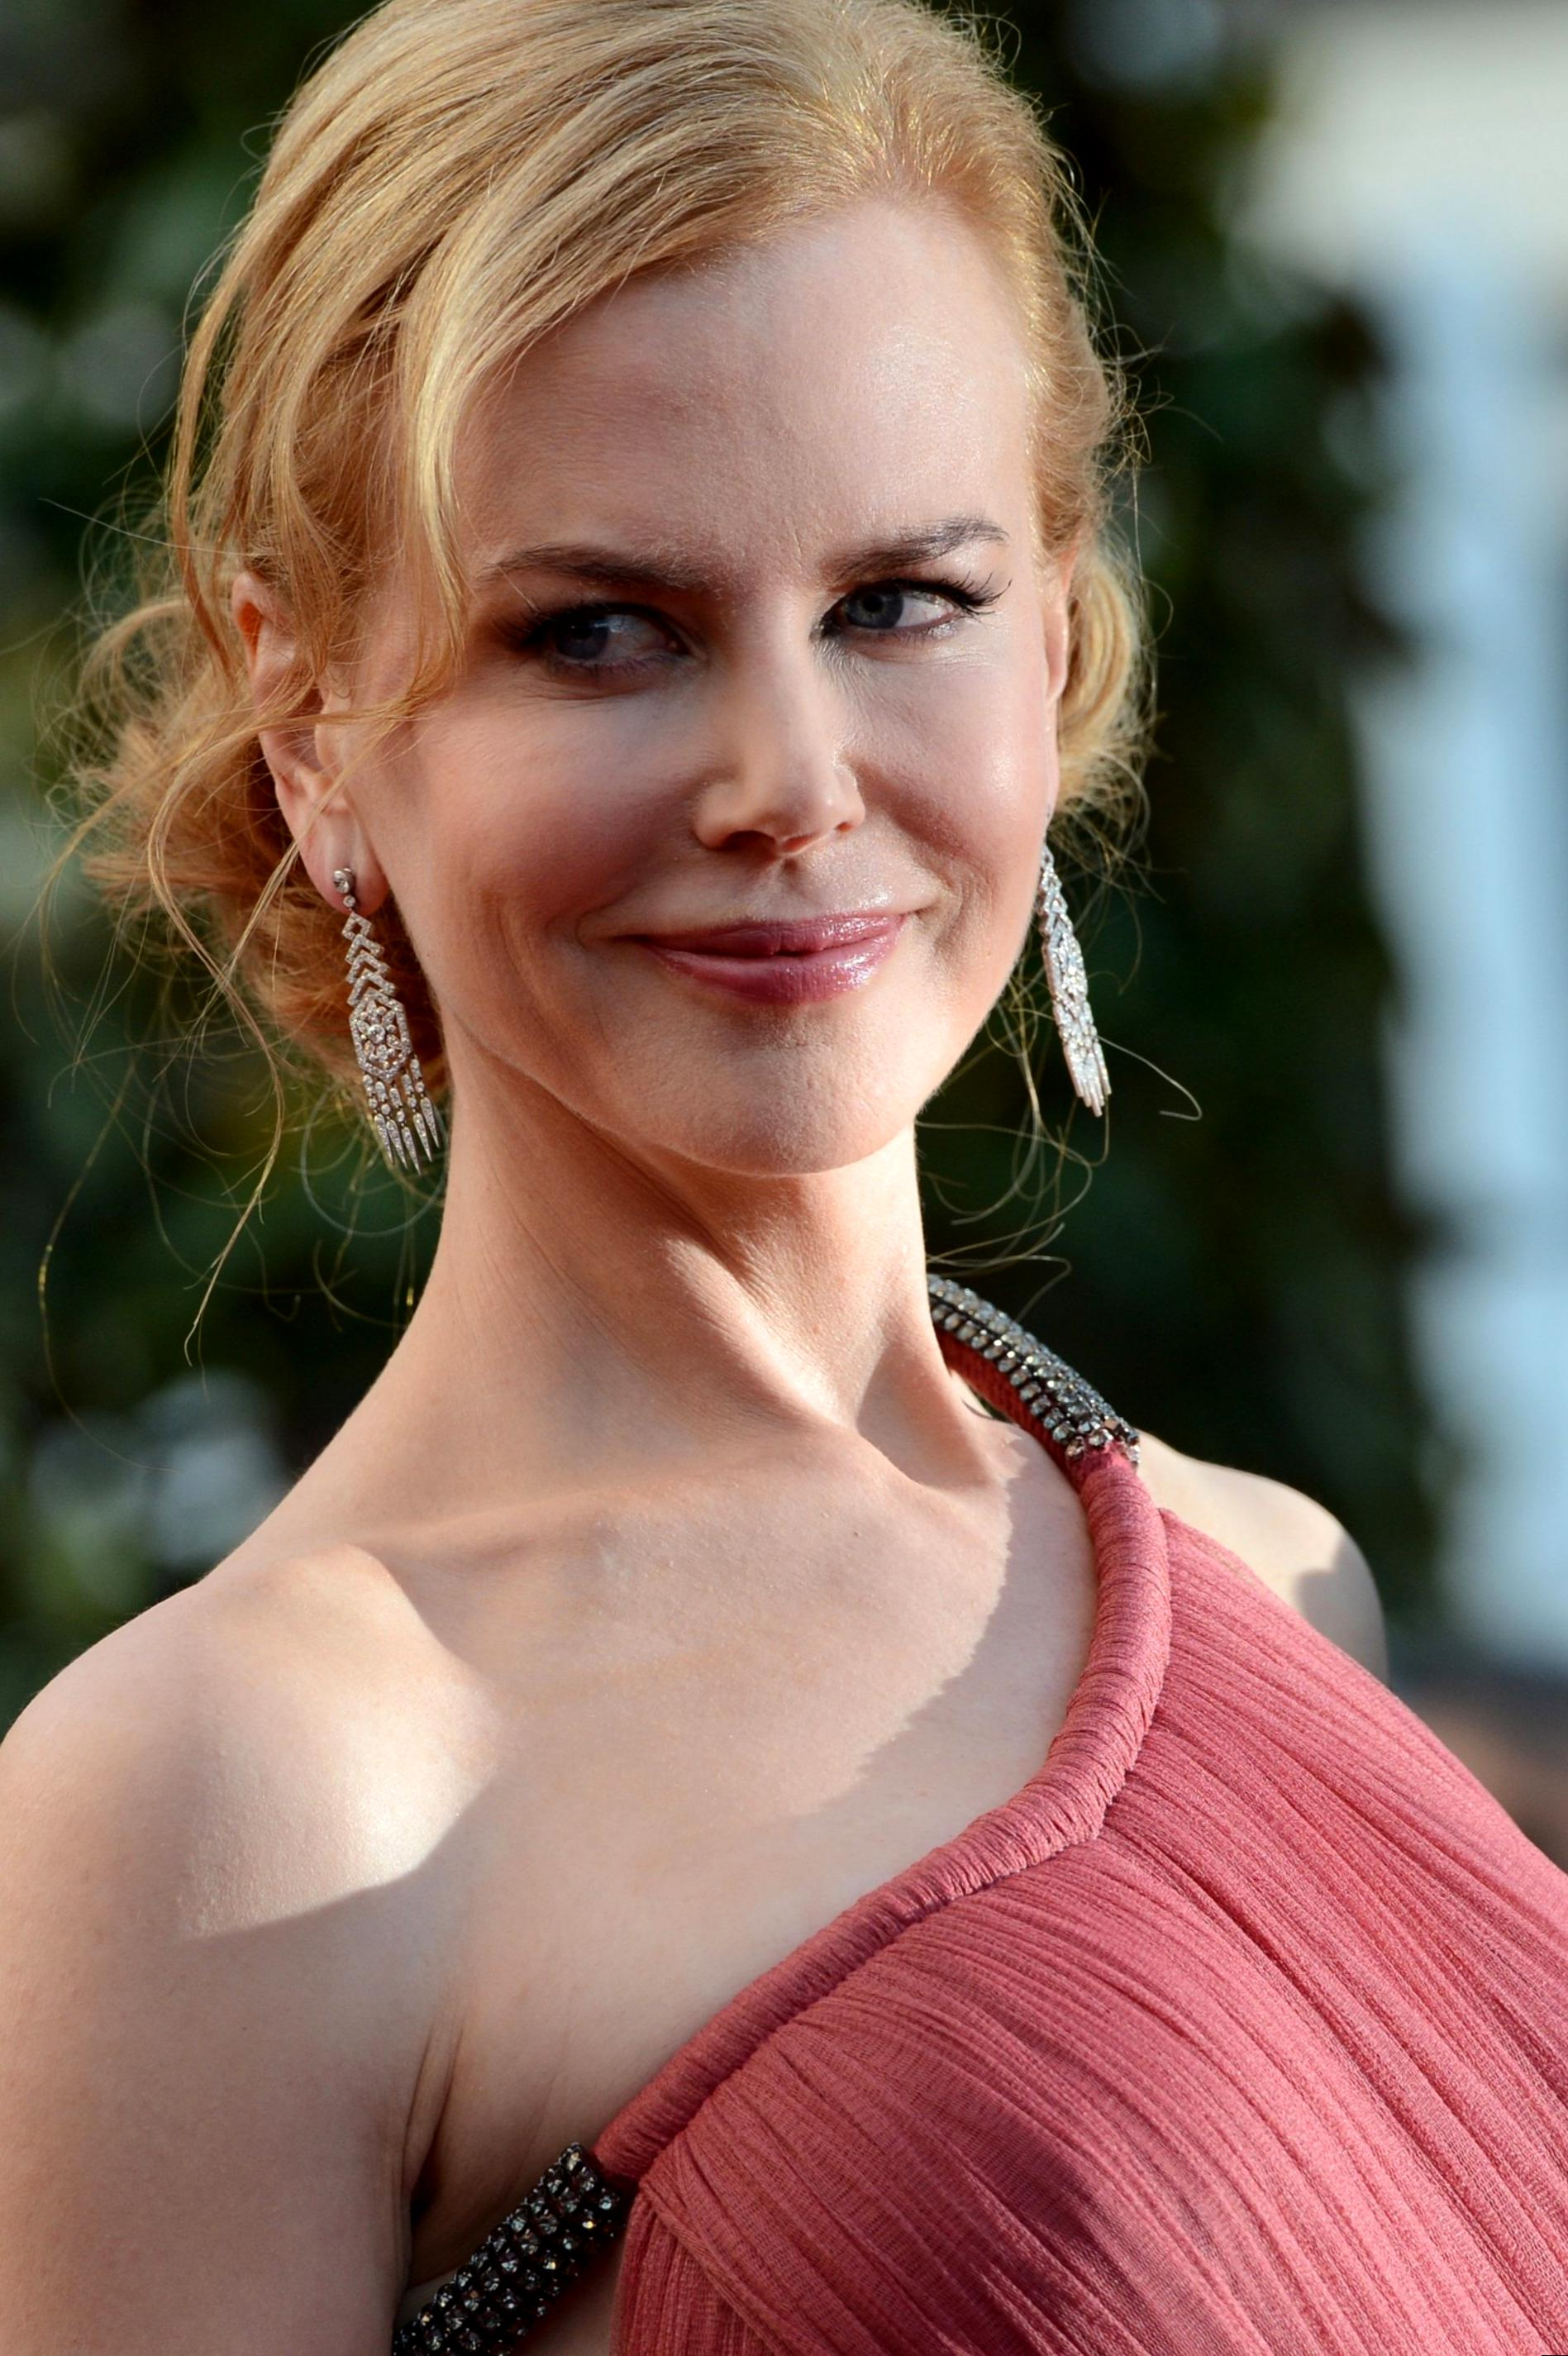 Wallpaper Hd 1080p Free Download For Mobile Nicole Kidman 263913 Wallpapers High Quality Download Free